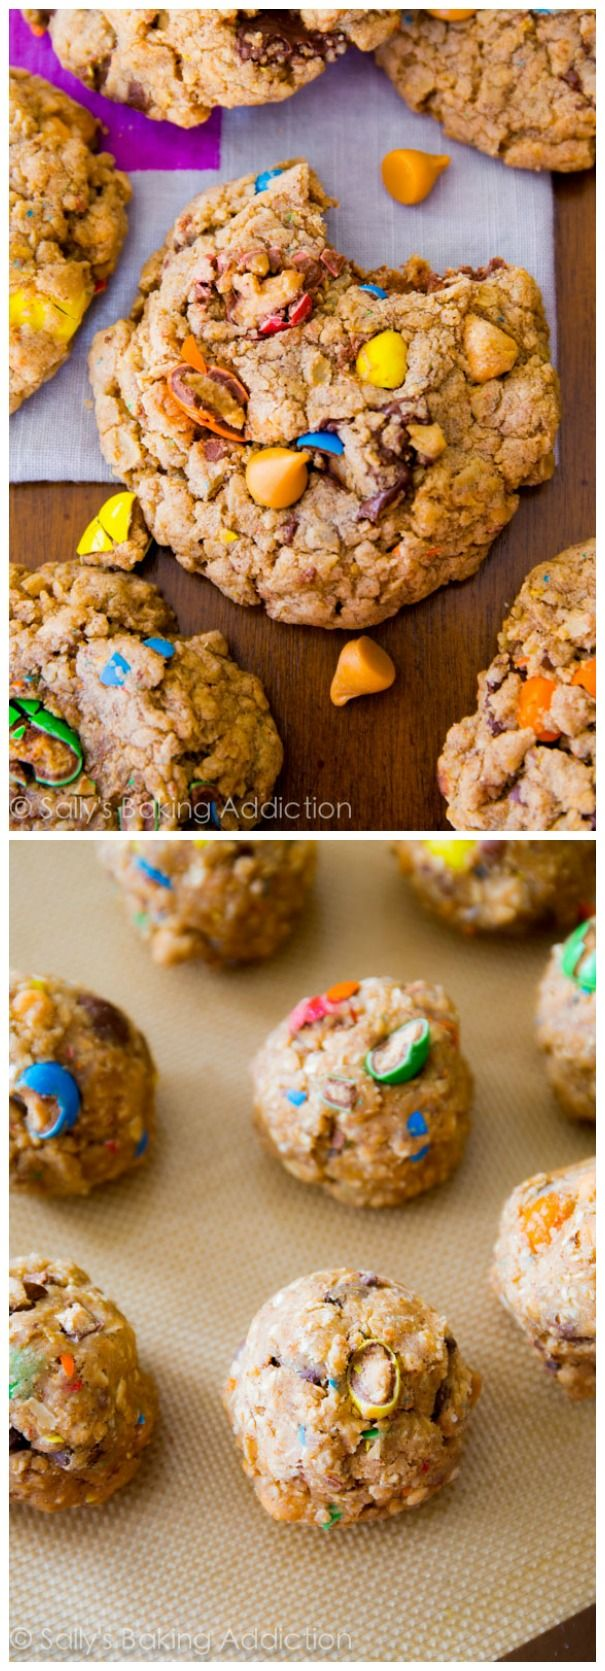 Soft-baked, ultra chewy, and simple oatmeal cookie recipe loaded with your favorites! Less than an hour start-to-finish!